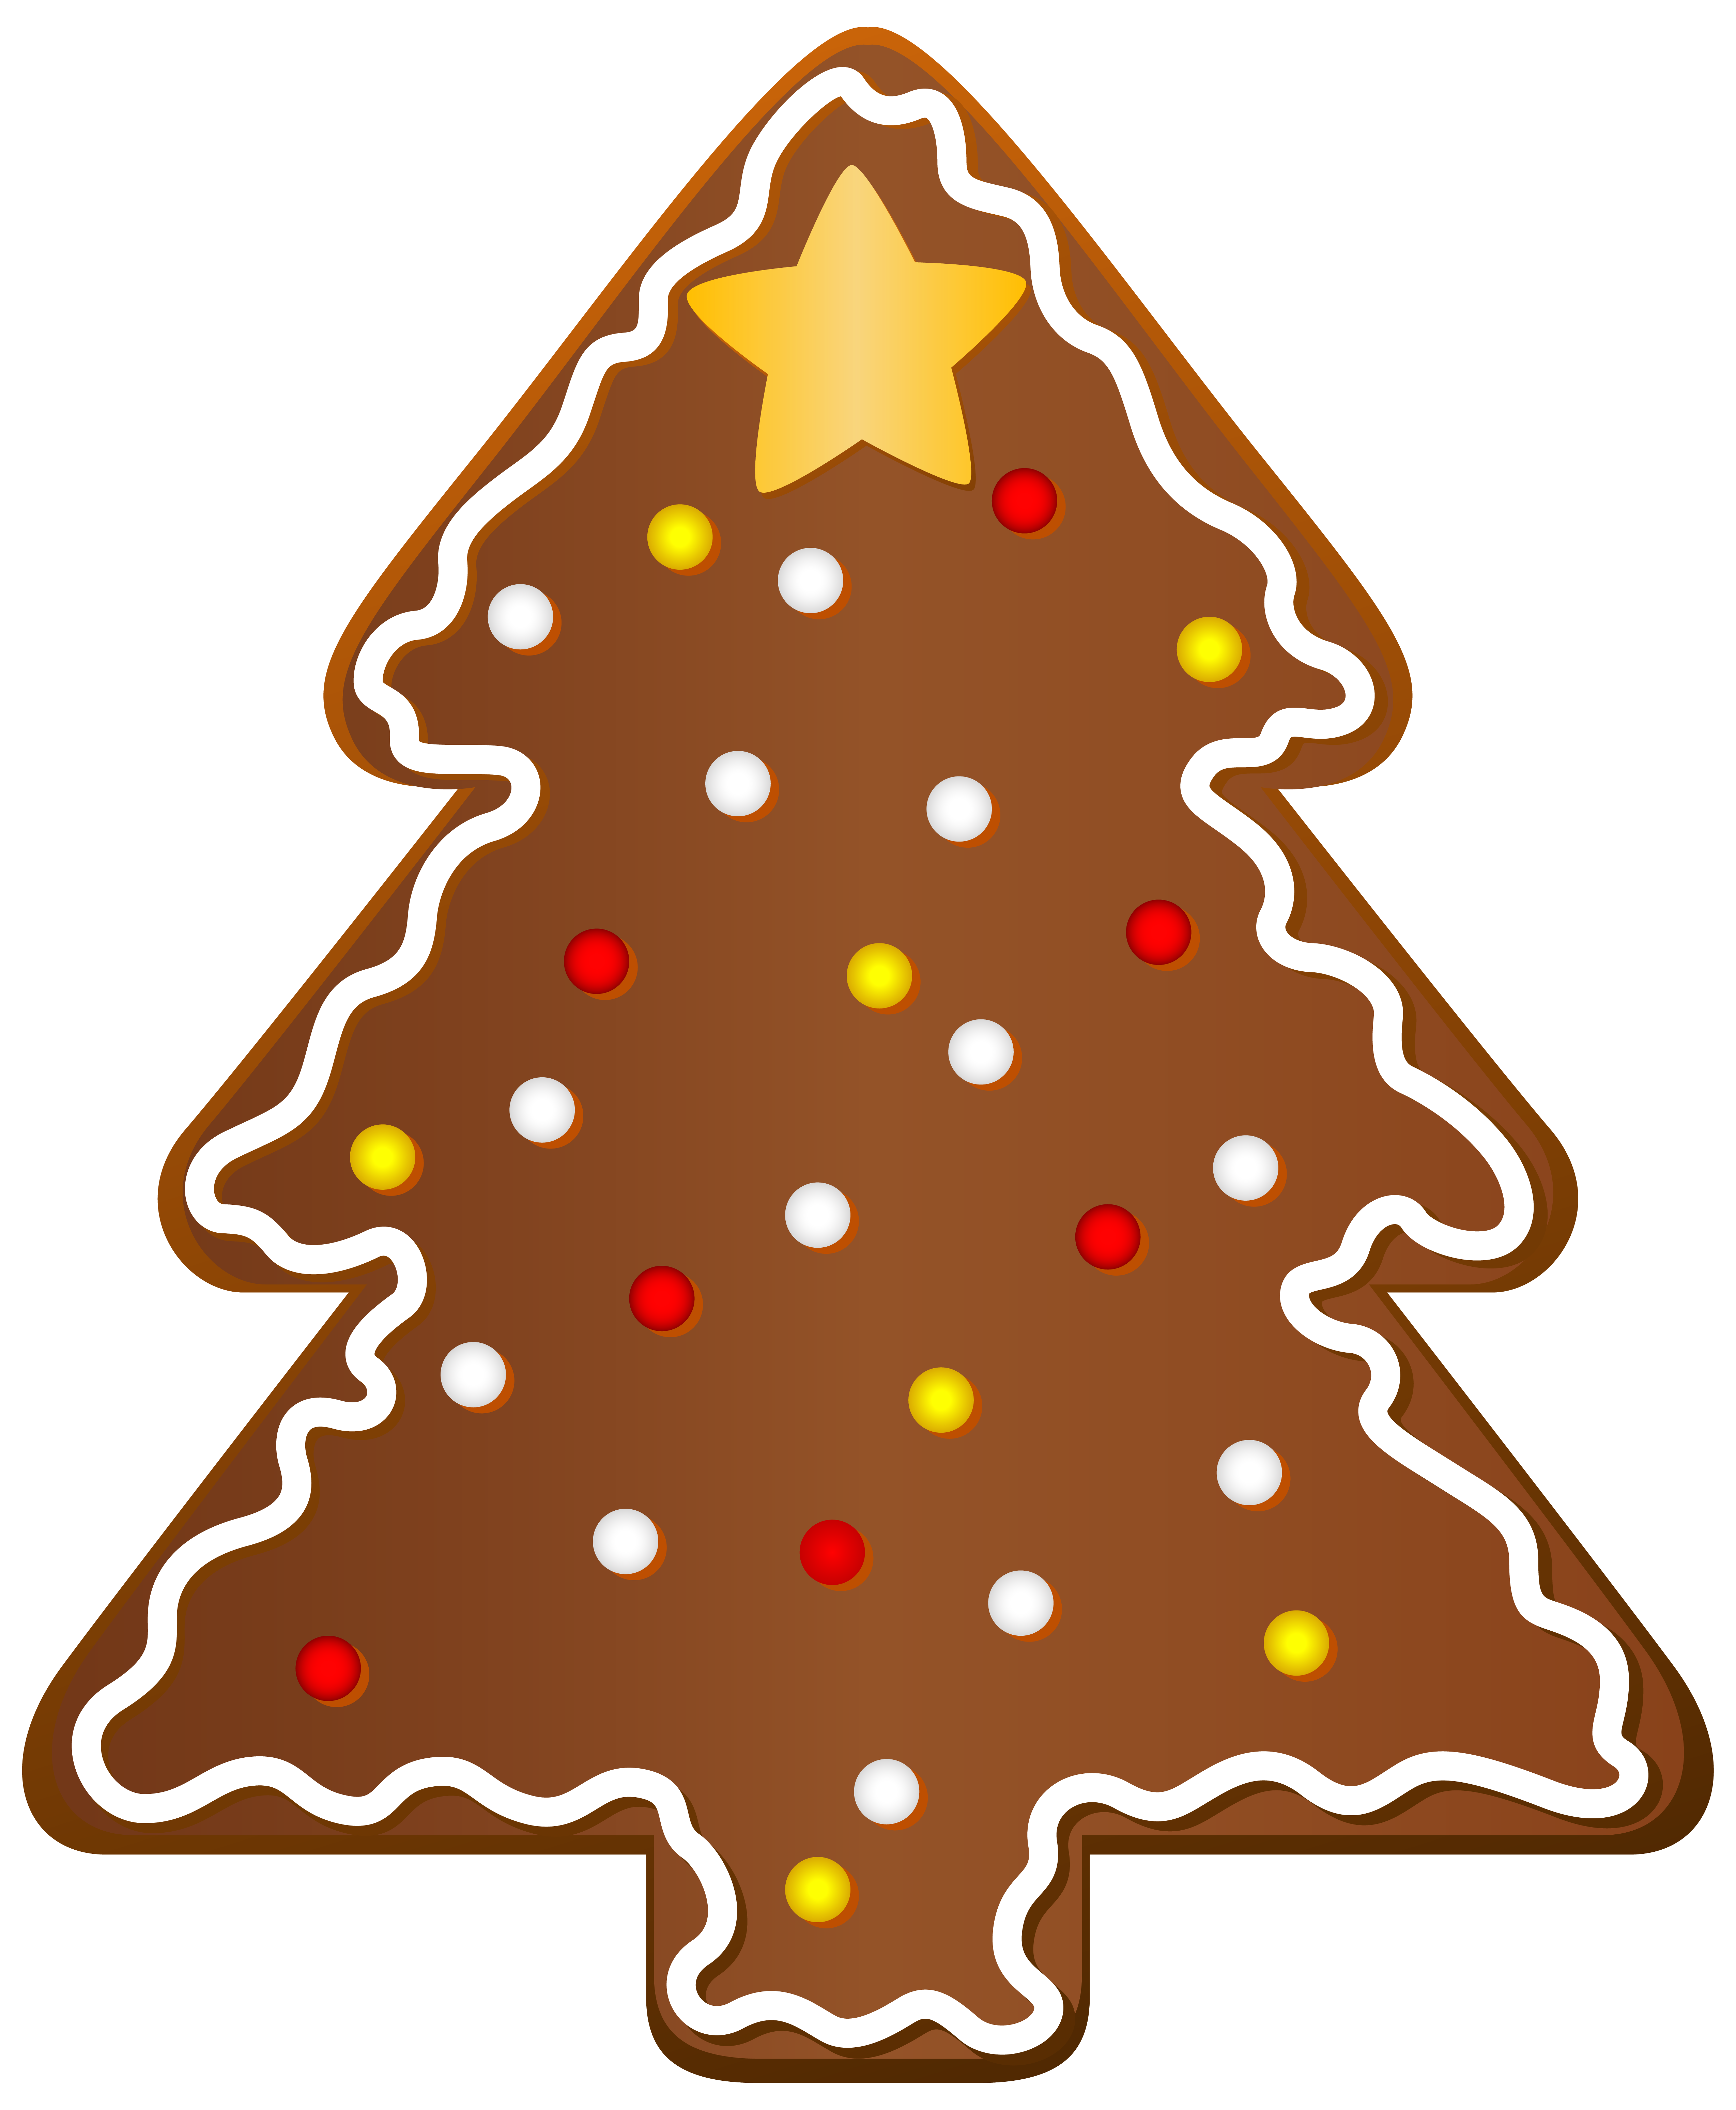 Christmas Cookie Tree Clipart PNG Image.